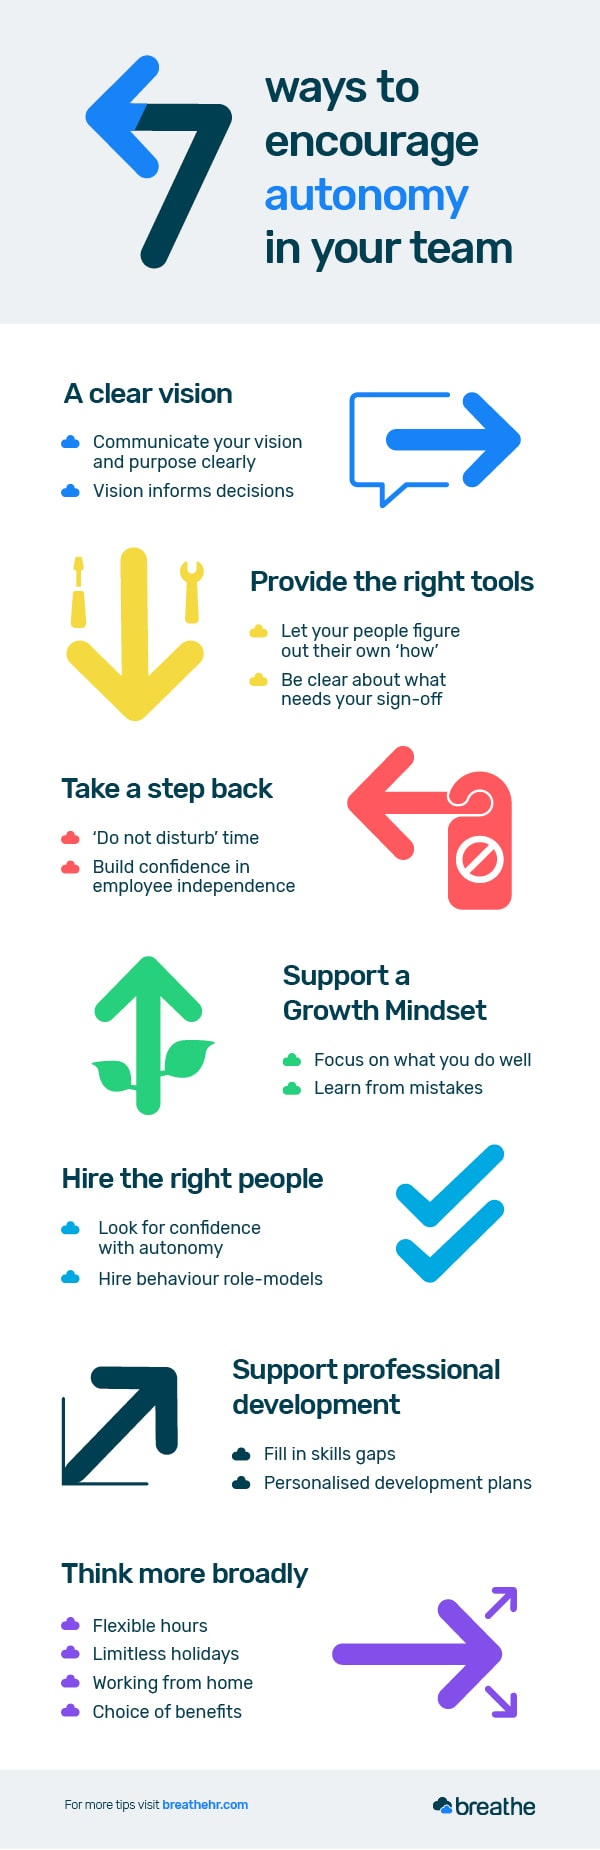 7 ways to encourage autonomy in your team infographic